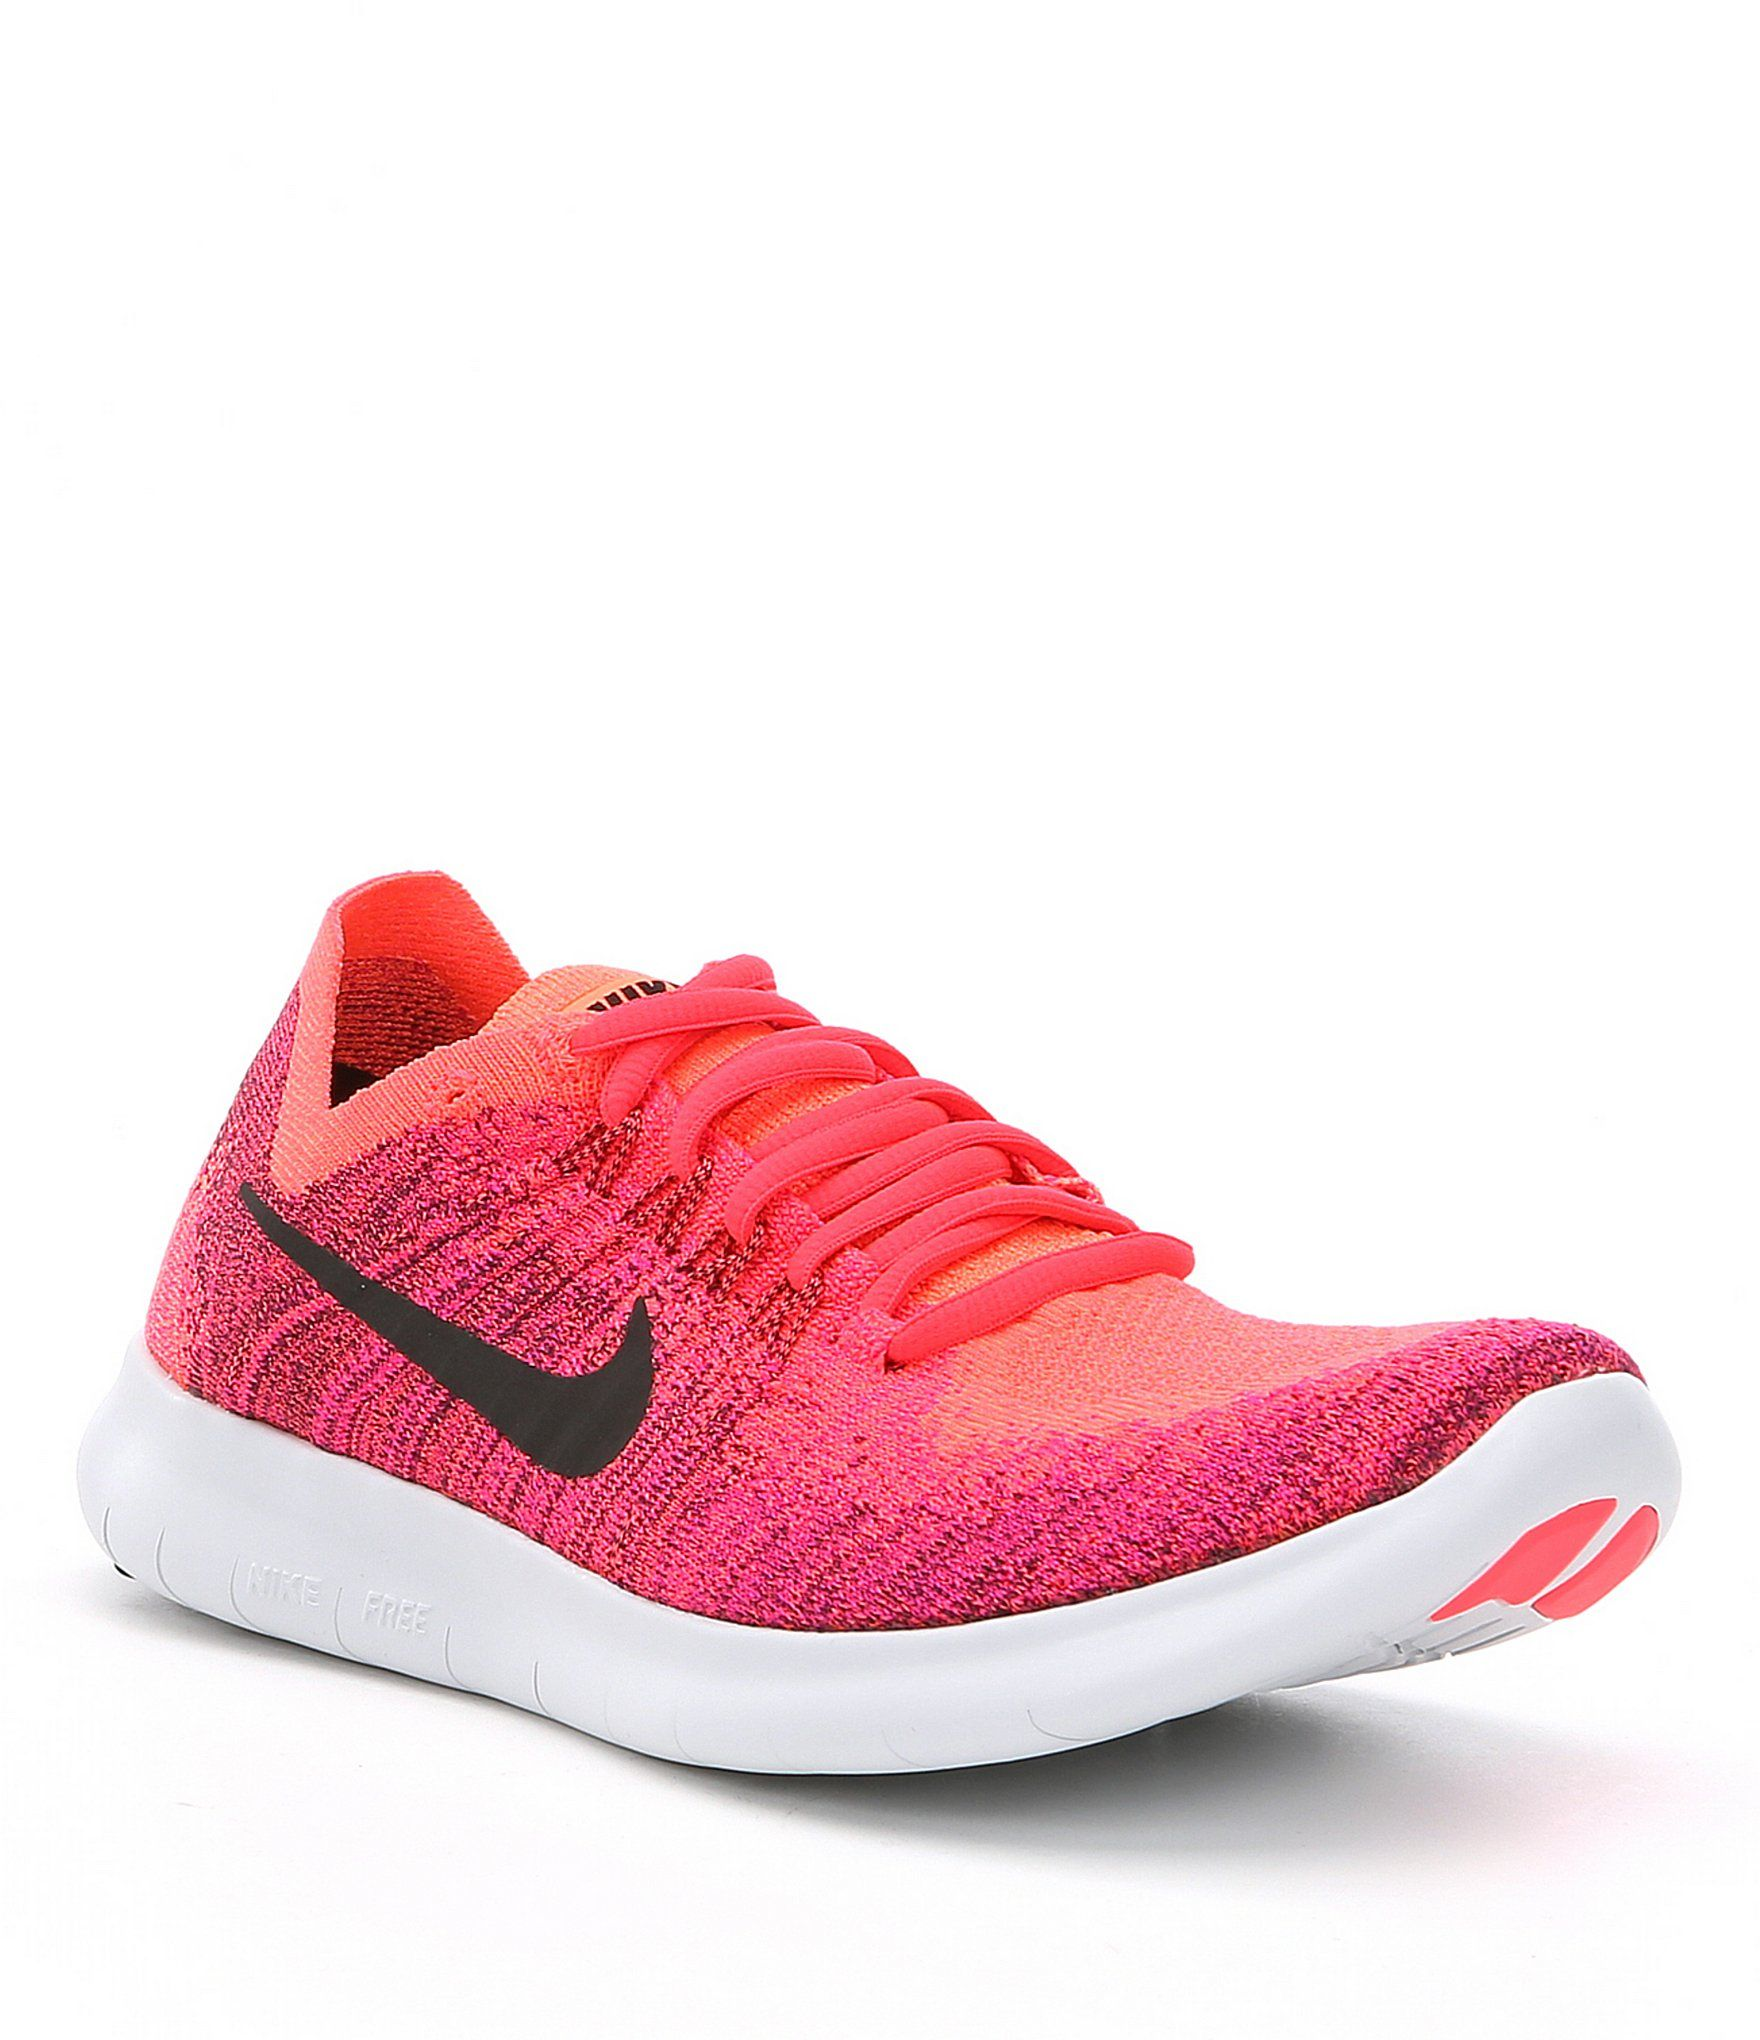 quality design ca6c2 8d3d1 Shop for Nike Women's Free RN Flyknit 2 Running Shoes at ...